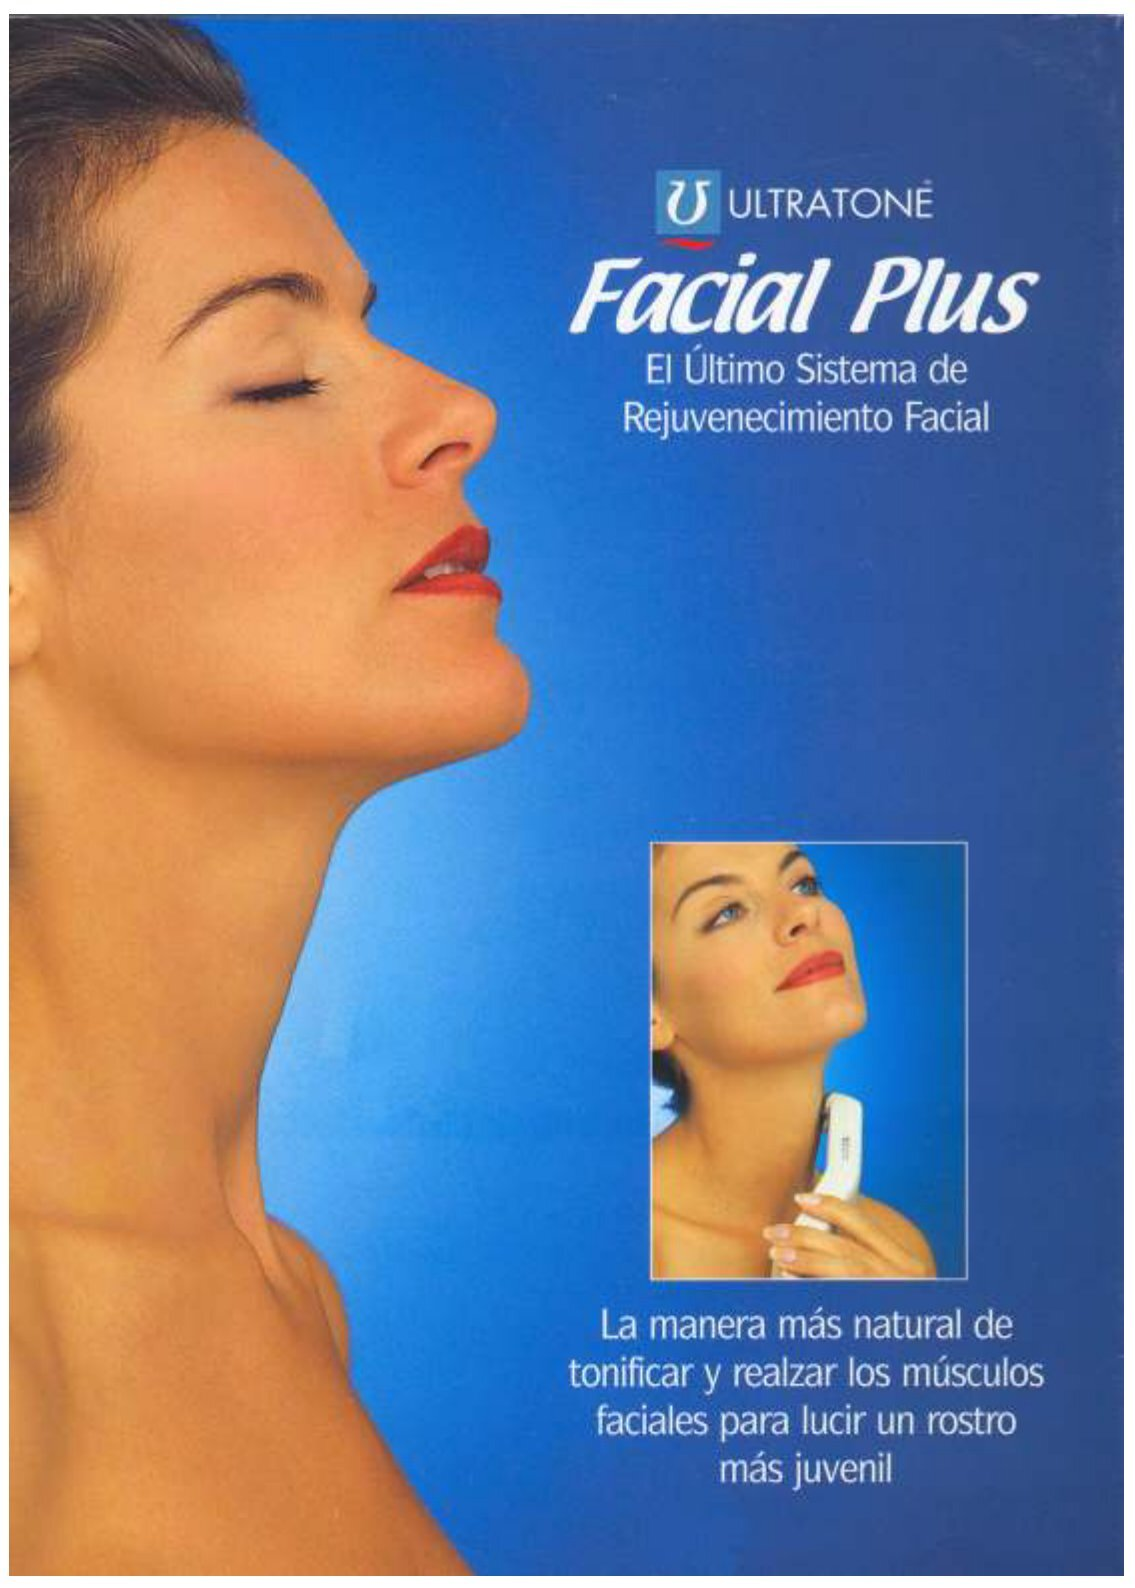 Ultratone facial plus